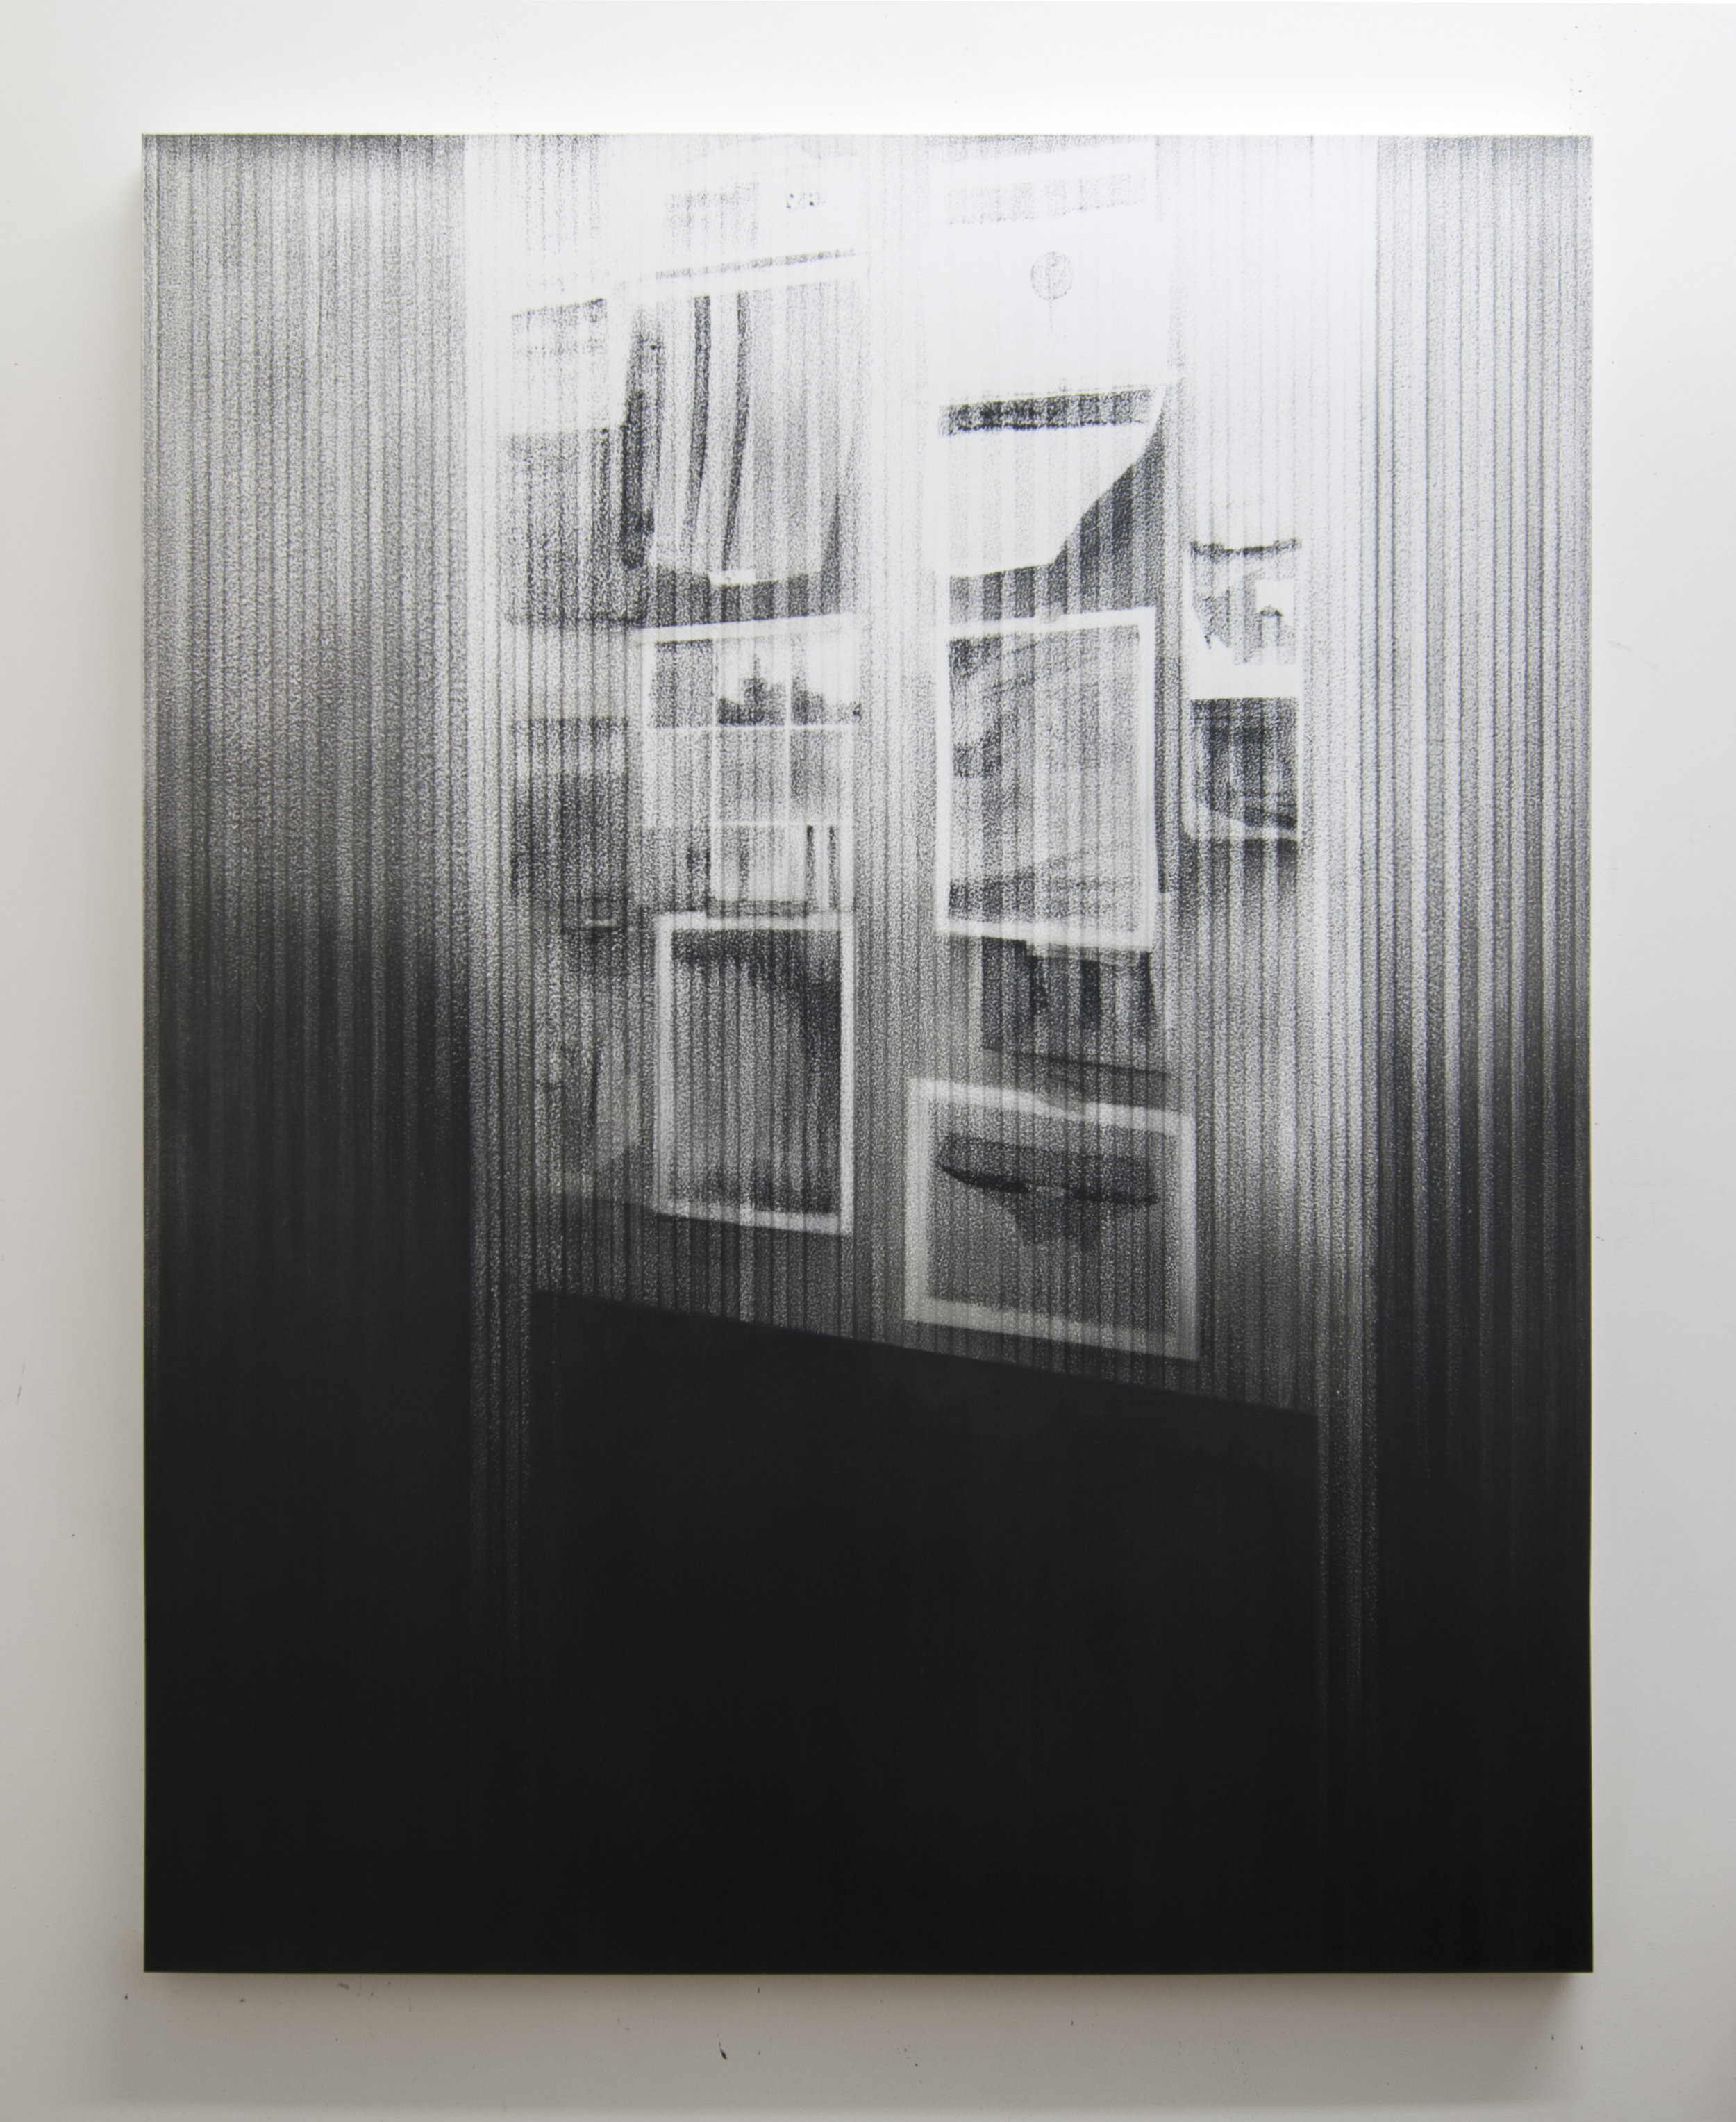 Watch List, 2015  Acrylic on panel, 56 x 44 inches